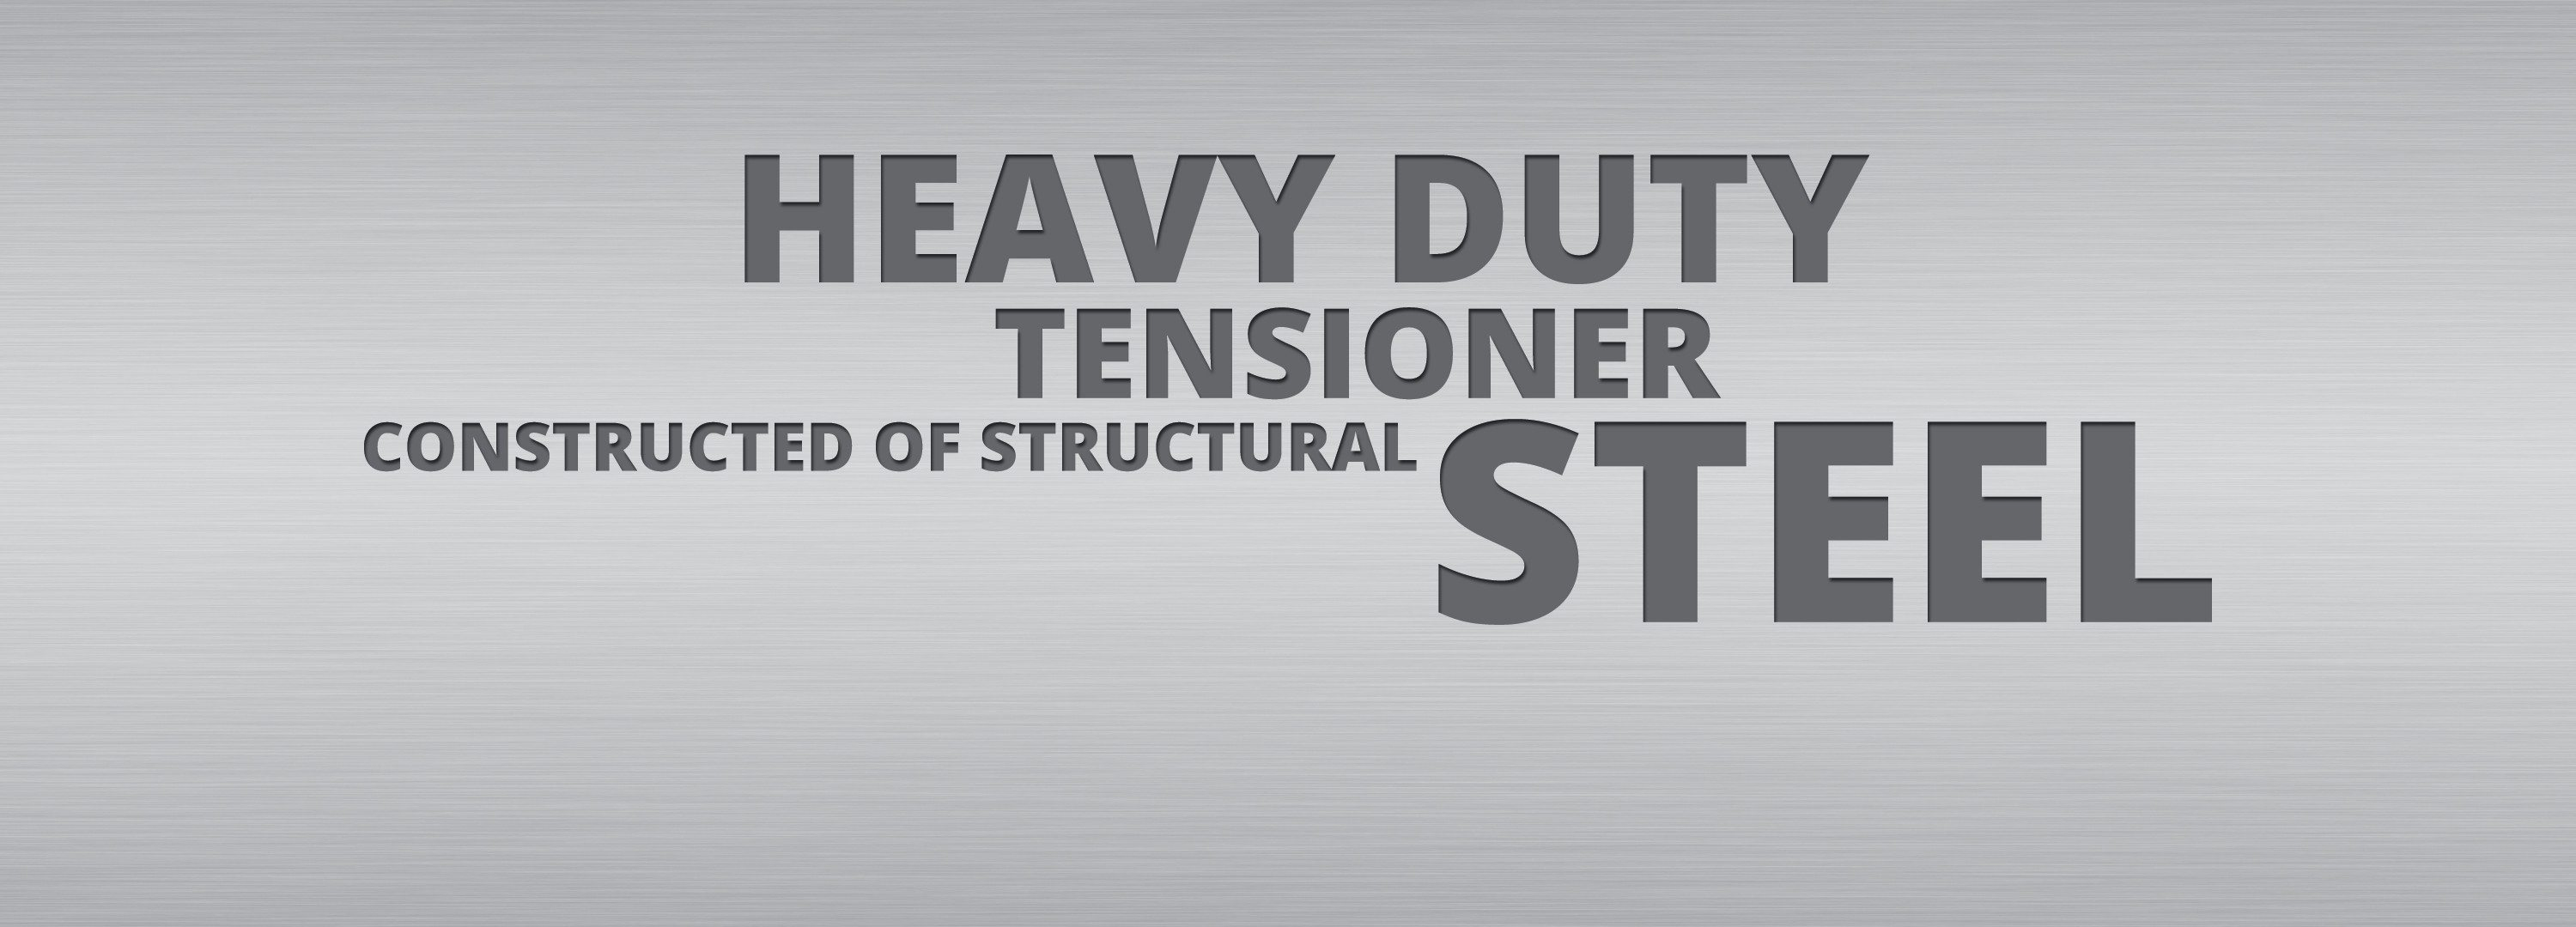 Heavy duty tensioner constructed of structural steel